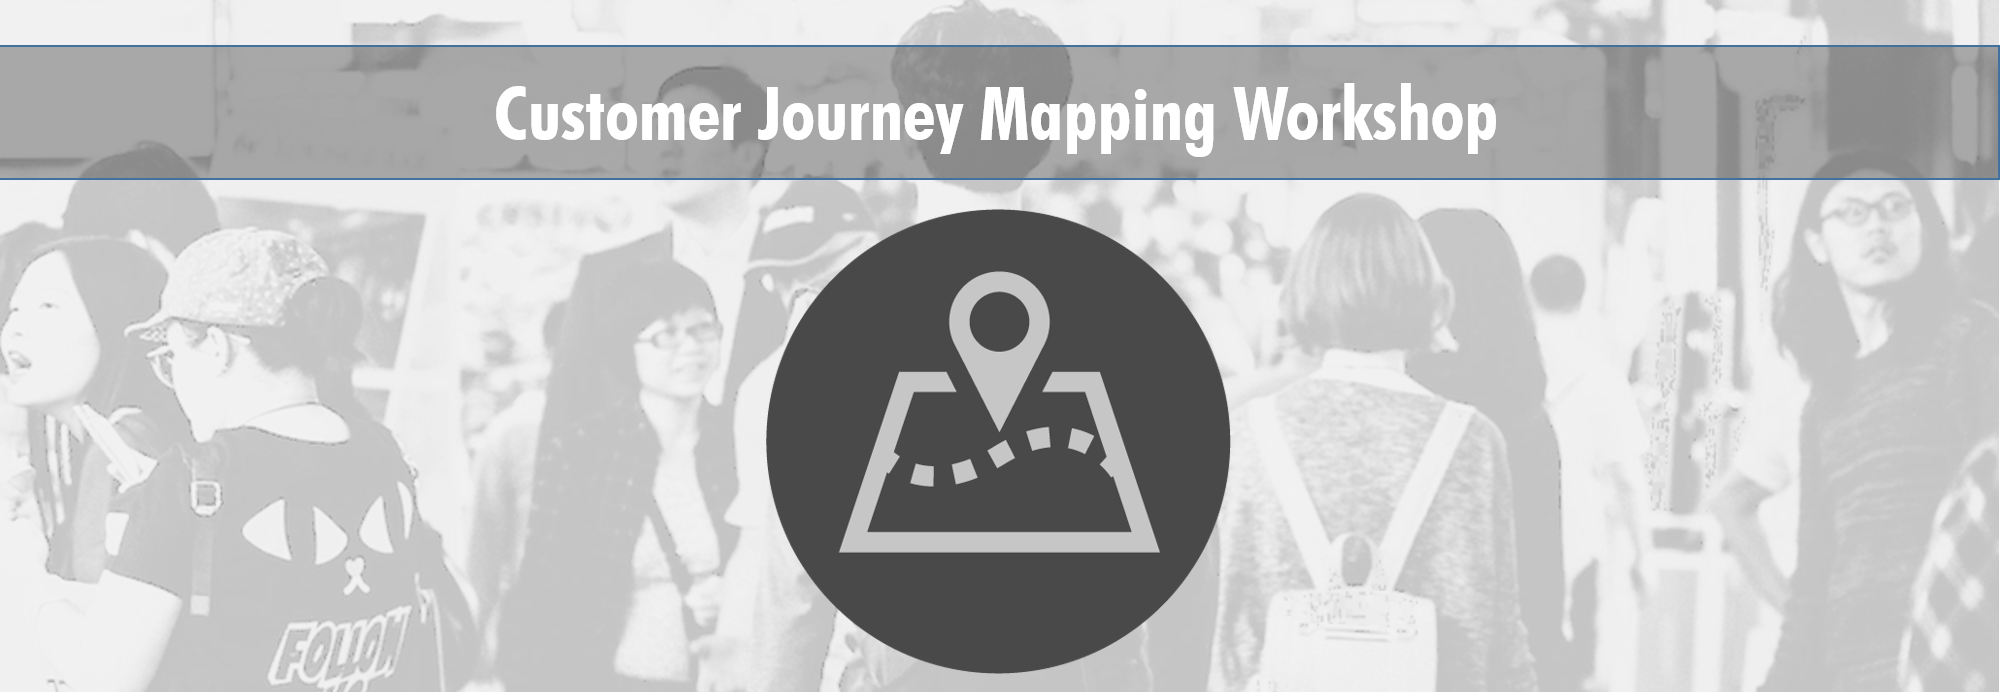 Customer Journey Mapping Workshop